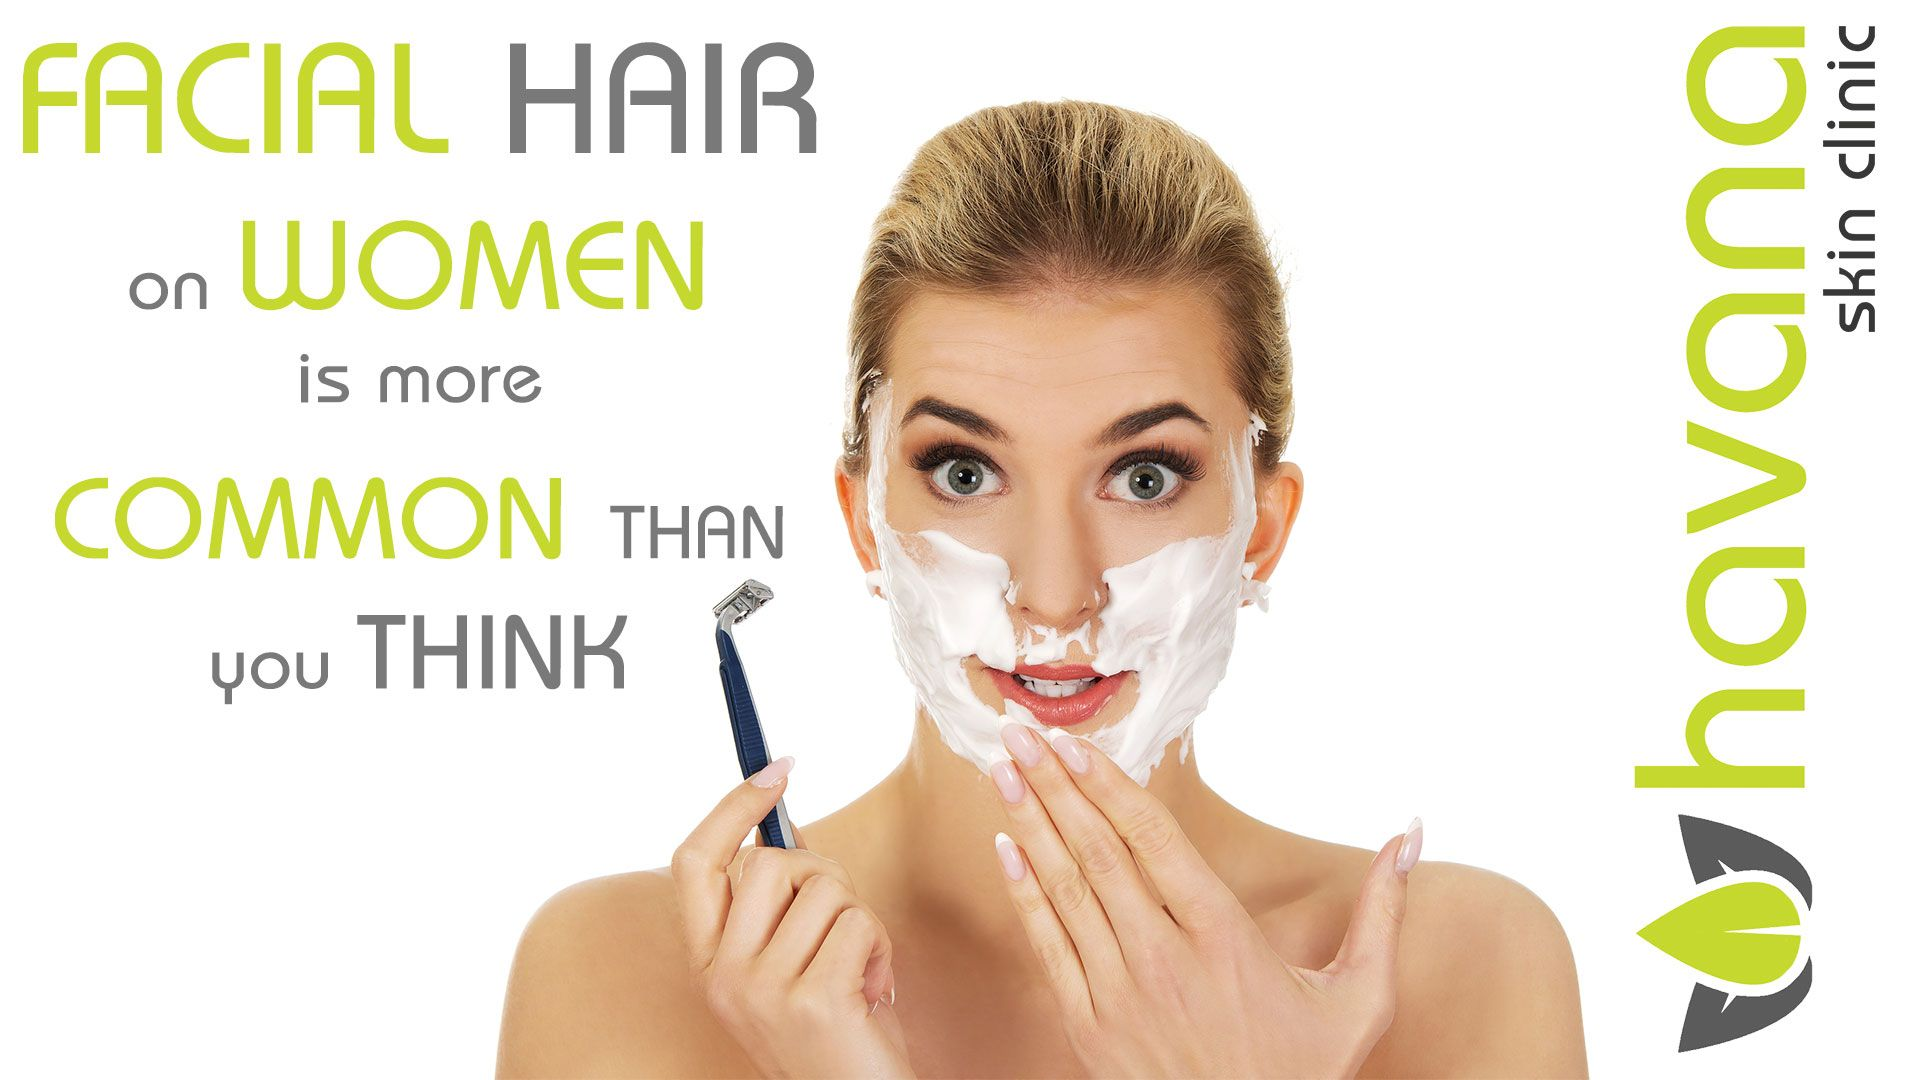 Not only is laser hair removal the safest and most